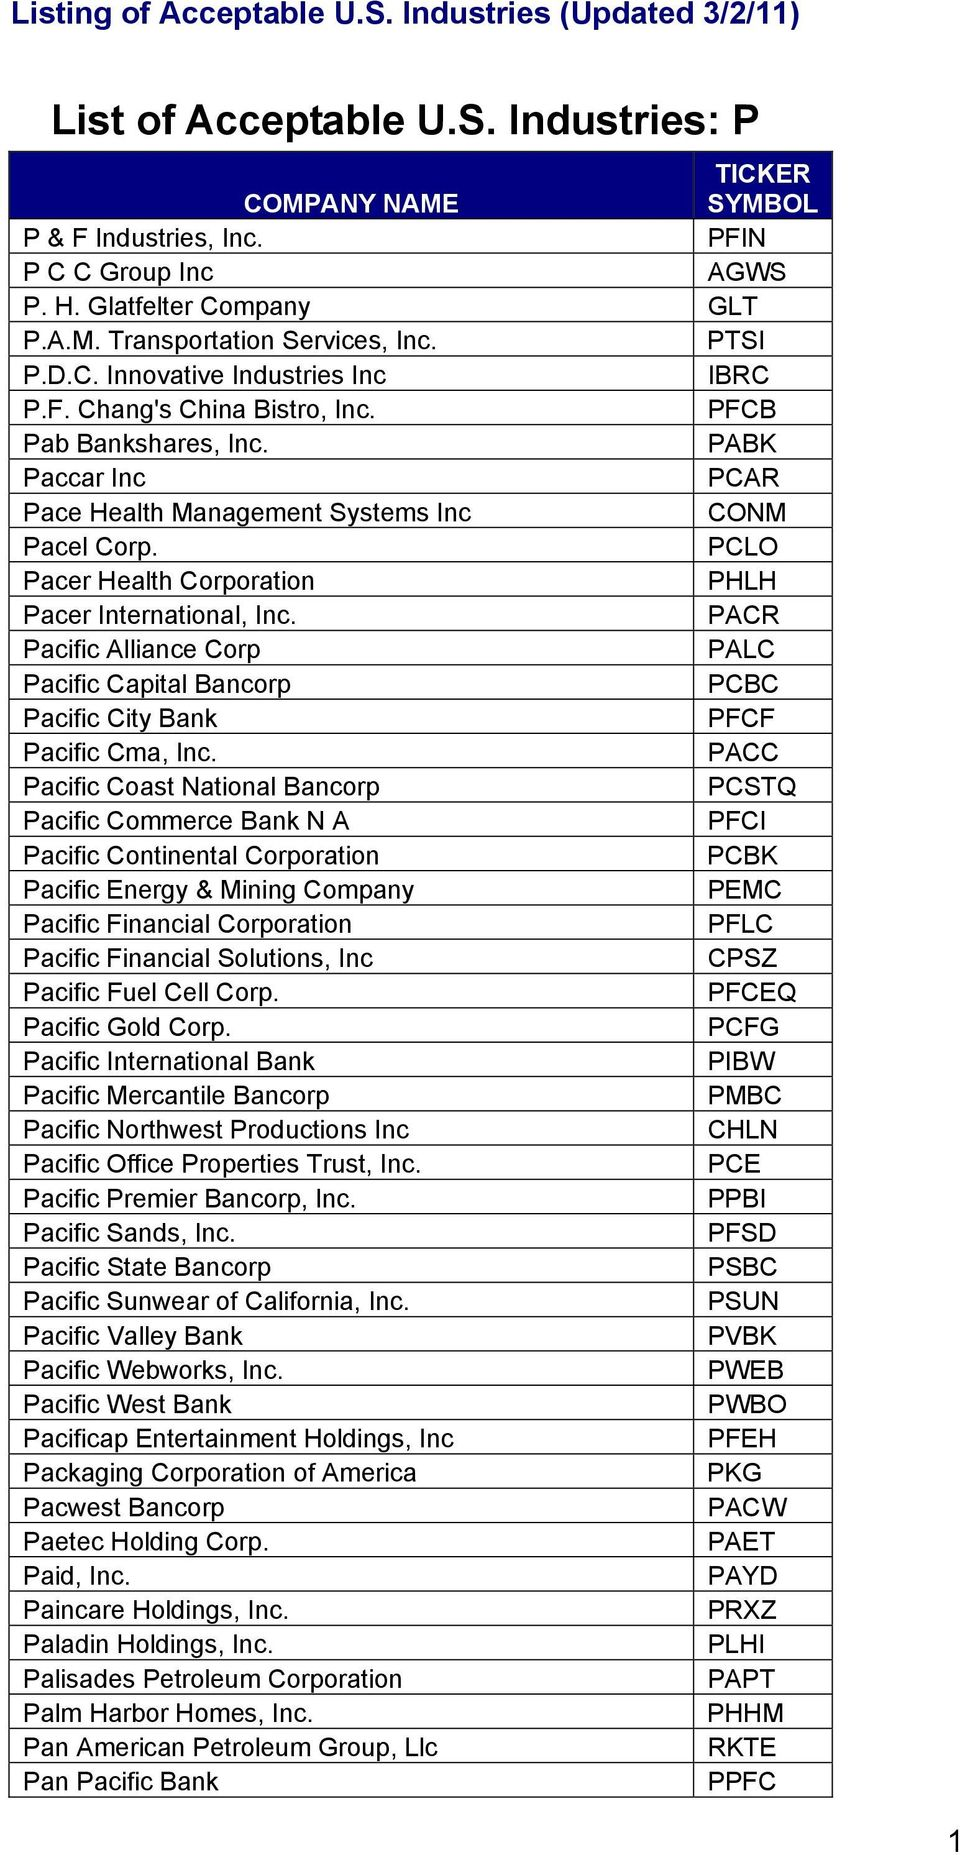 PACR Pacific Alliance Corp PALC Pacific Capital Bancorp PCBC Pacific City Bank PFCF Pacific Cma, Inc.